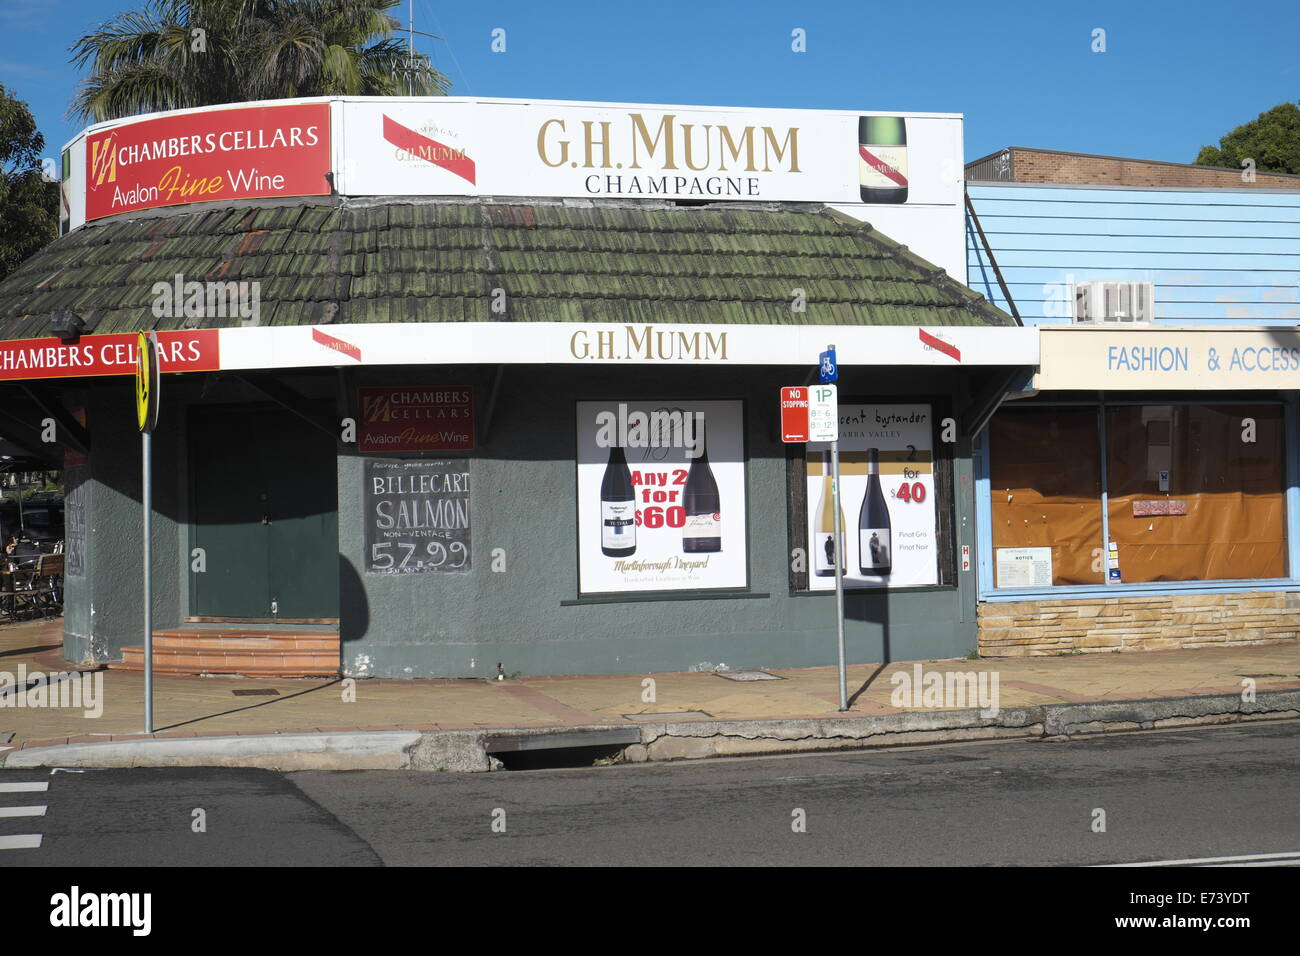 sydney off licence liquor store in Avalon new south walesaustralia - Stock Image & Liquor Licence Stock Photos u0026 Liquor Licence Stock Images - Alamy